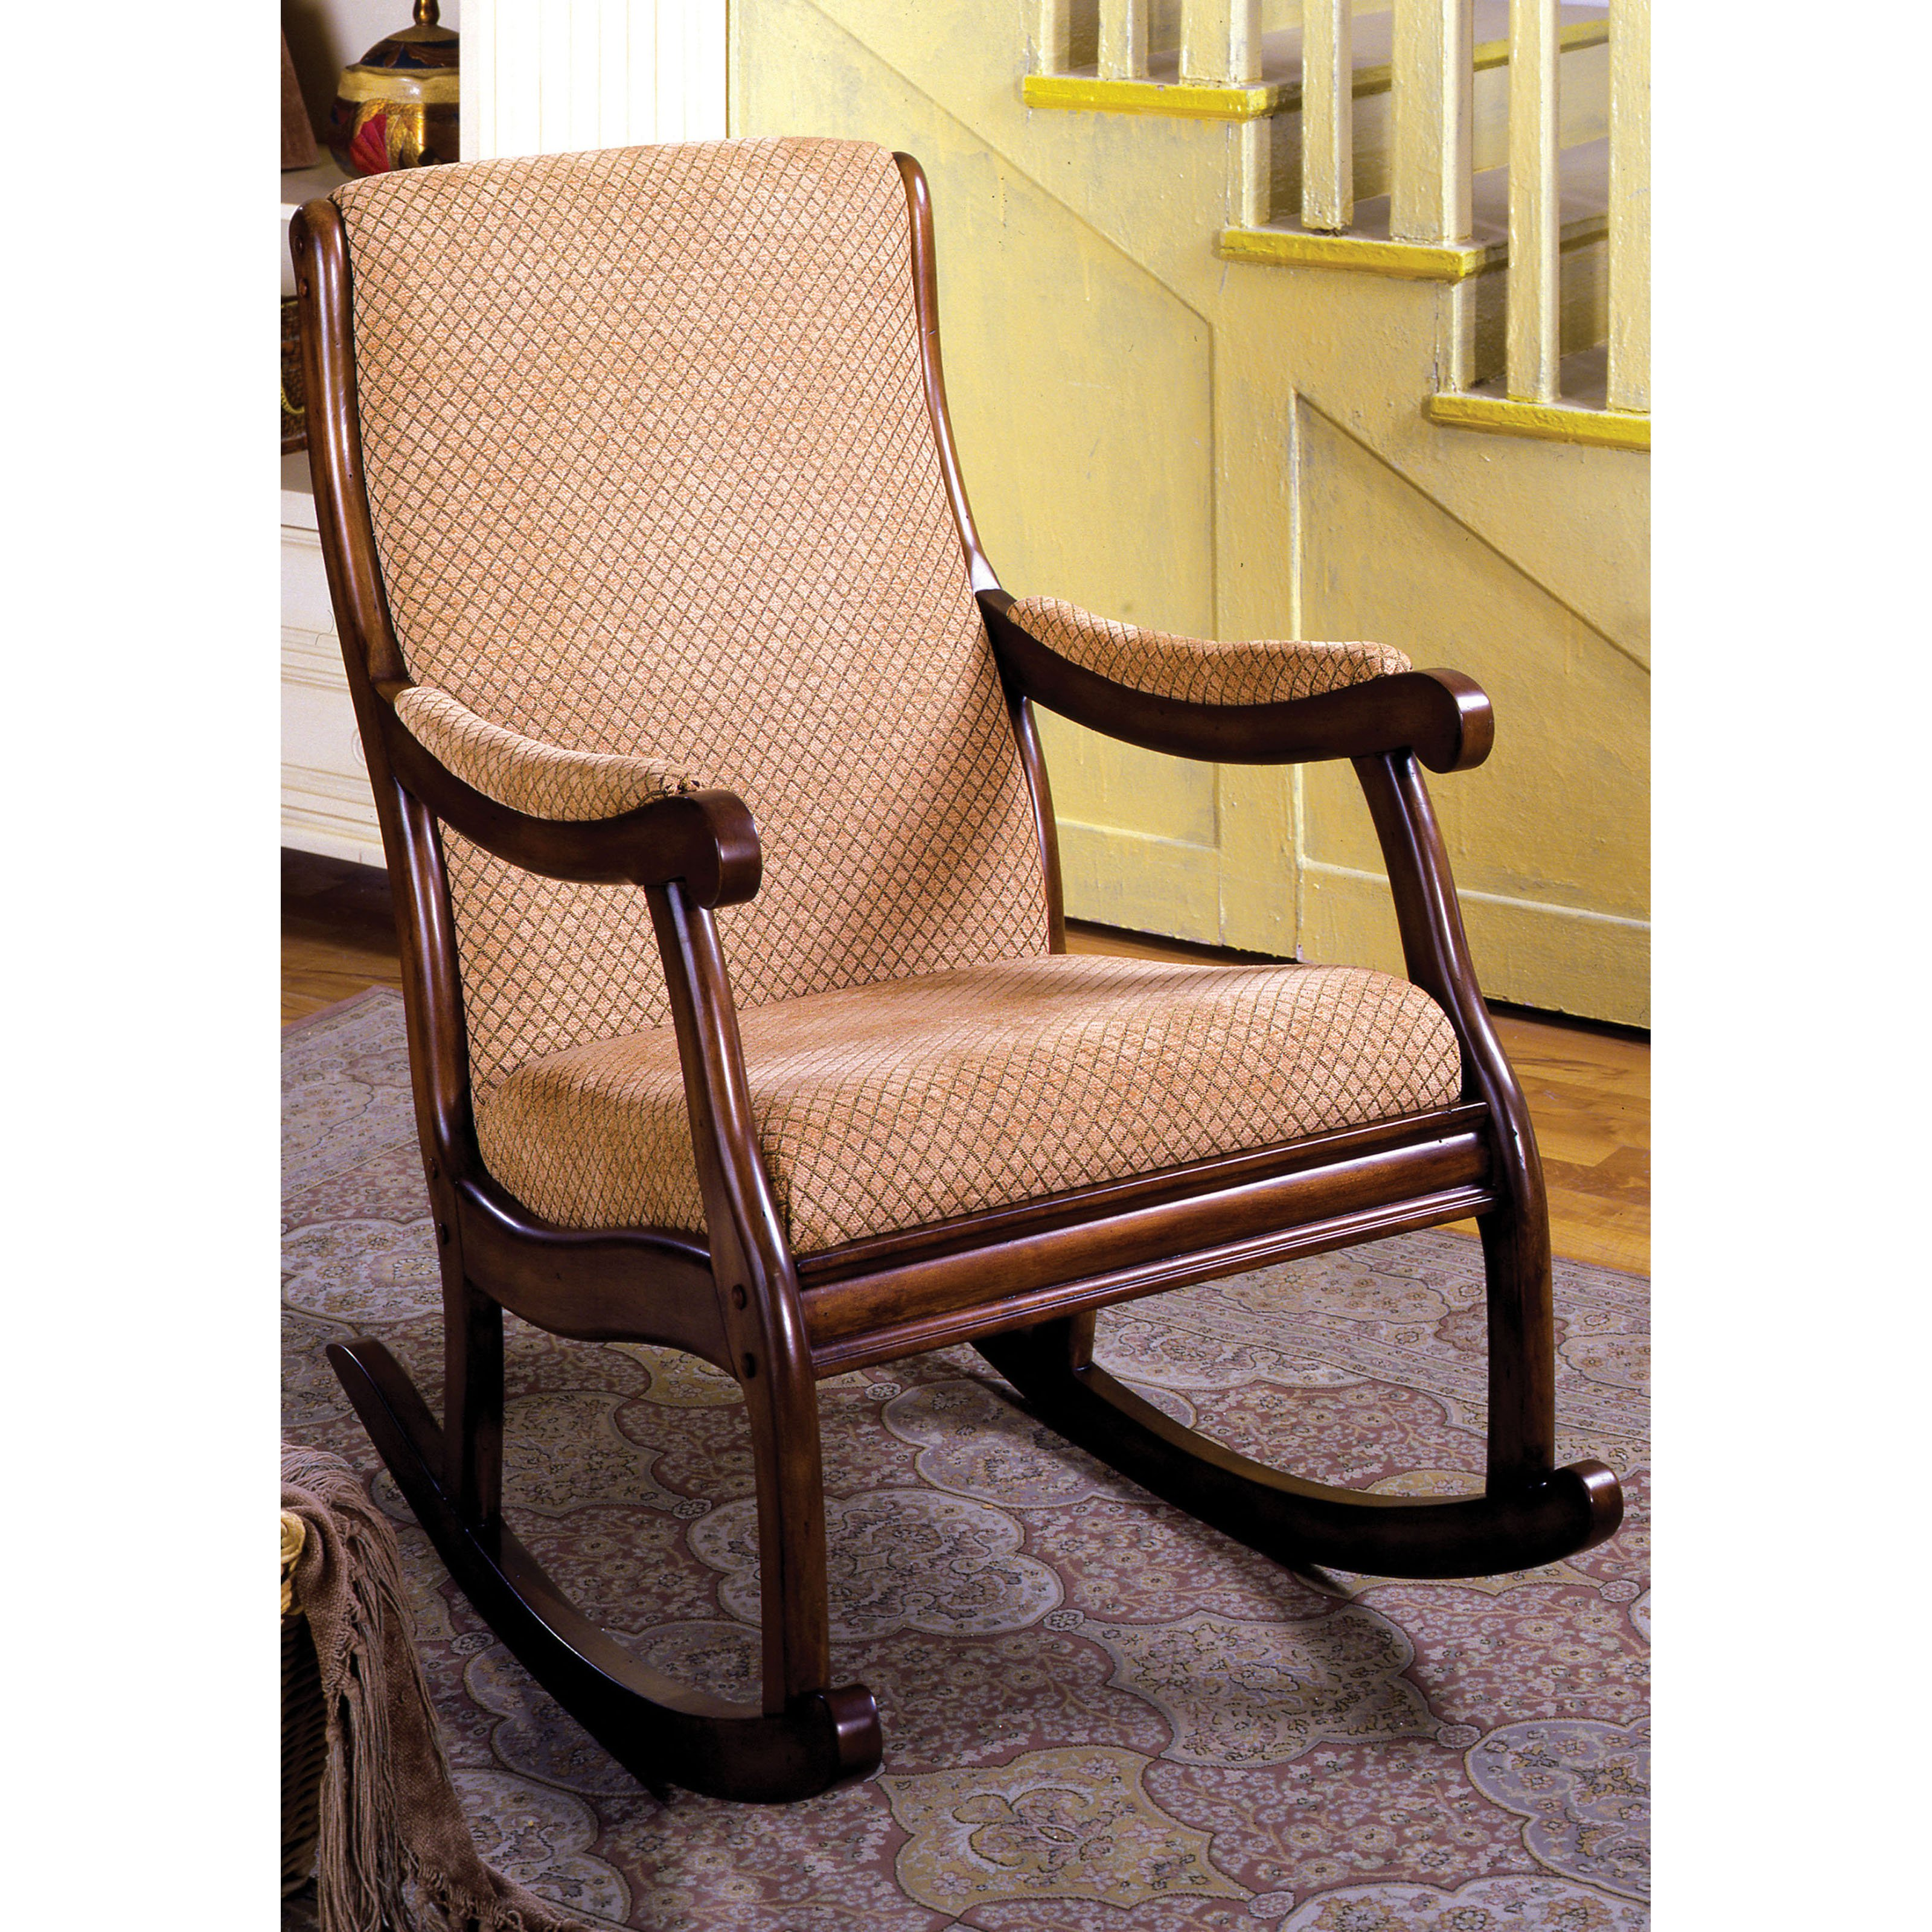 Furniture of America Bernardette Upholstered Rocking Chair by Enitial Lab